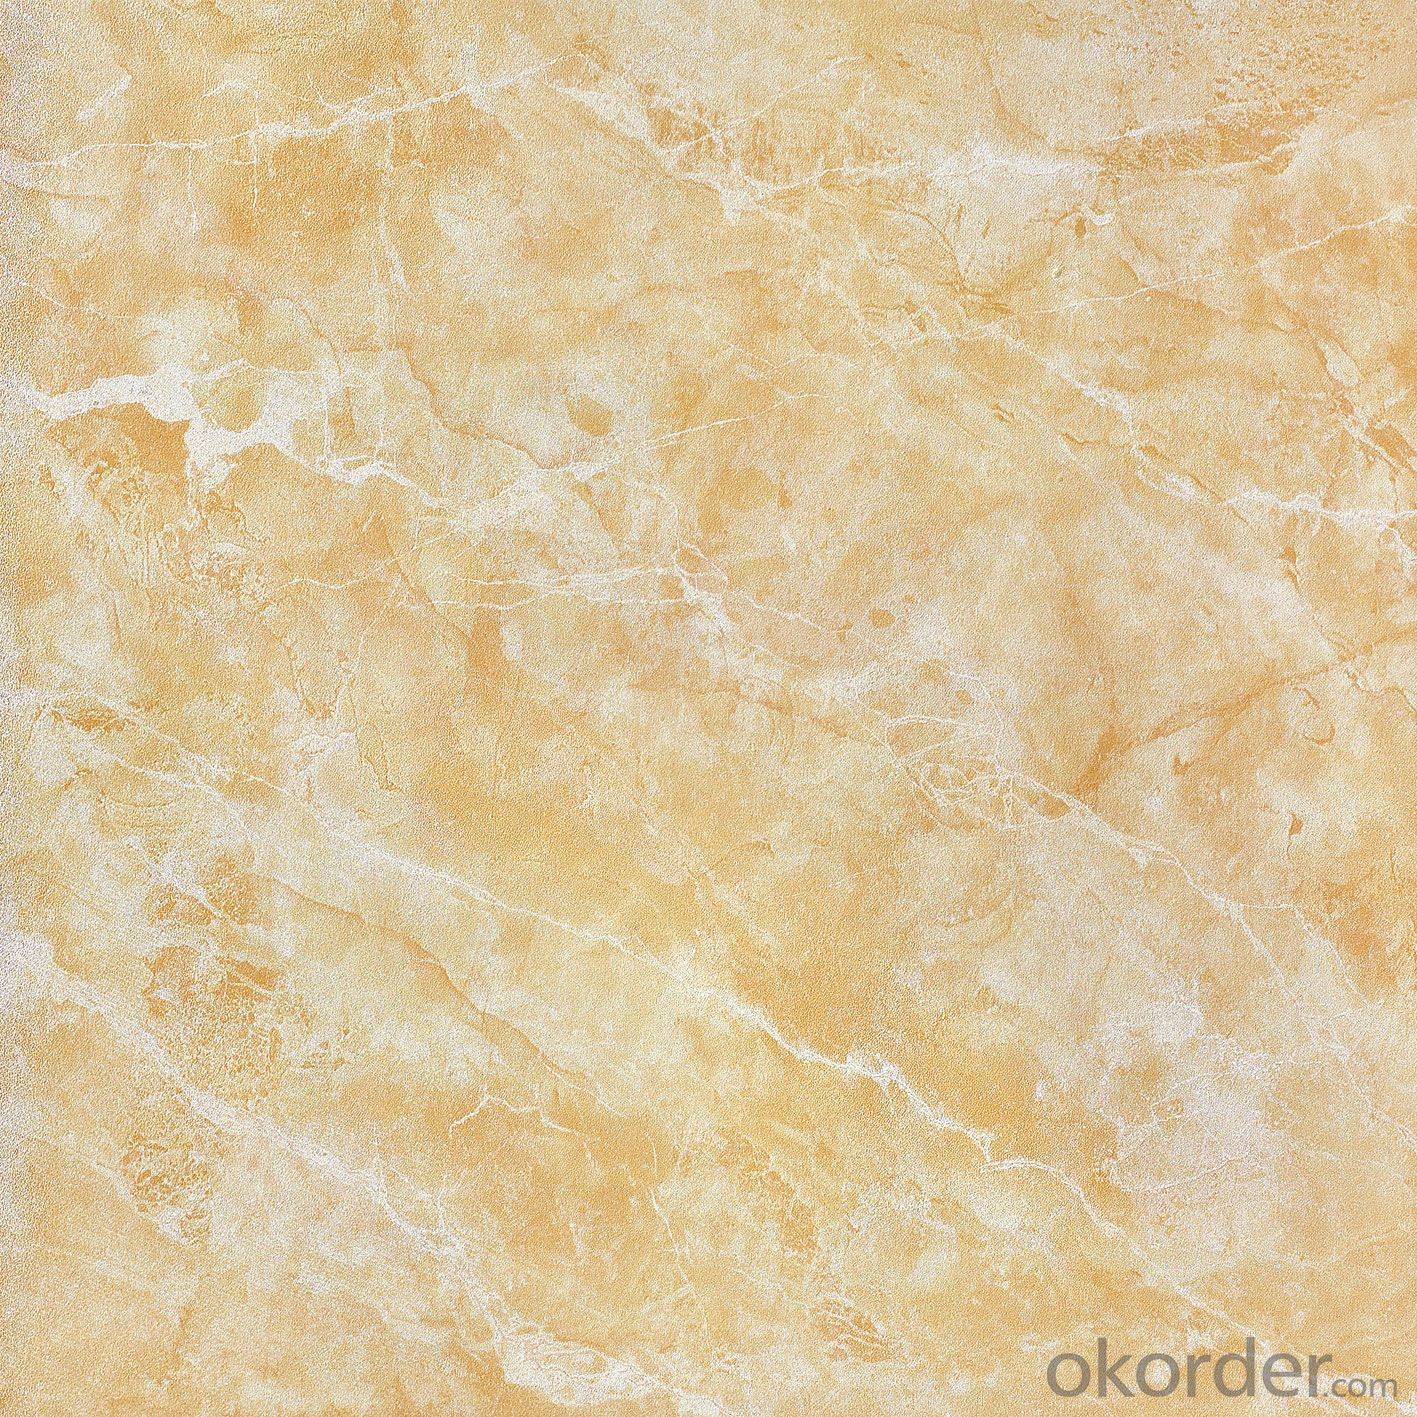 Glazed Porcelain Floor Tile 600x600mm CMAX-G6031